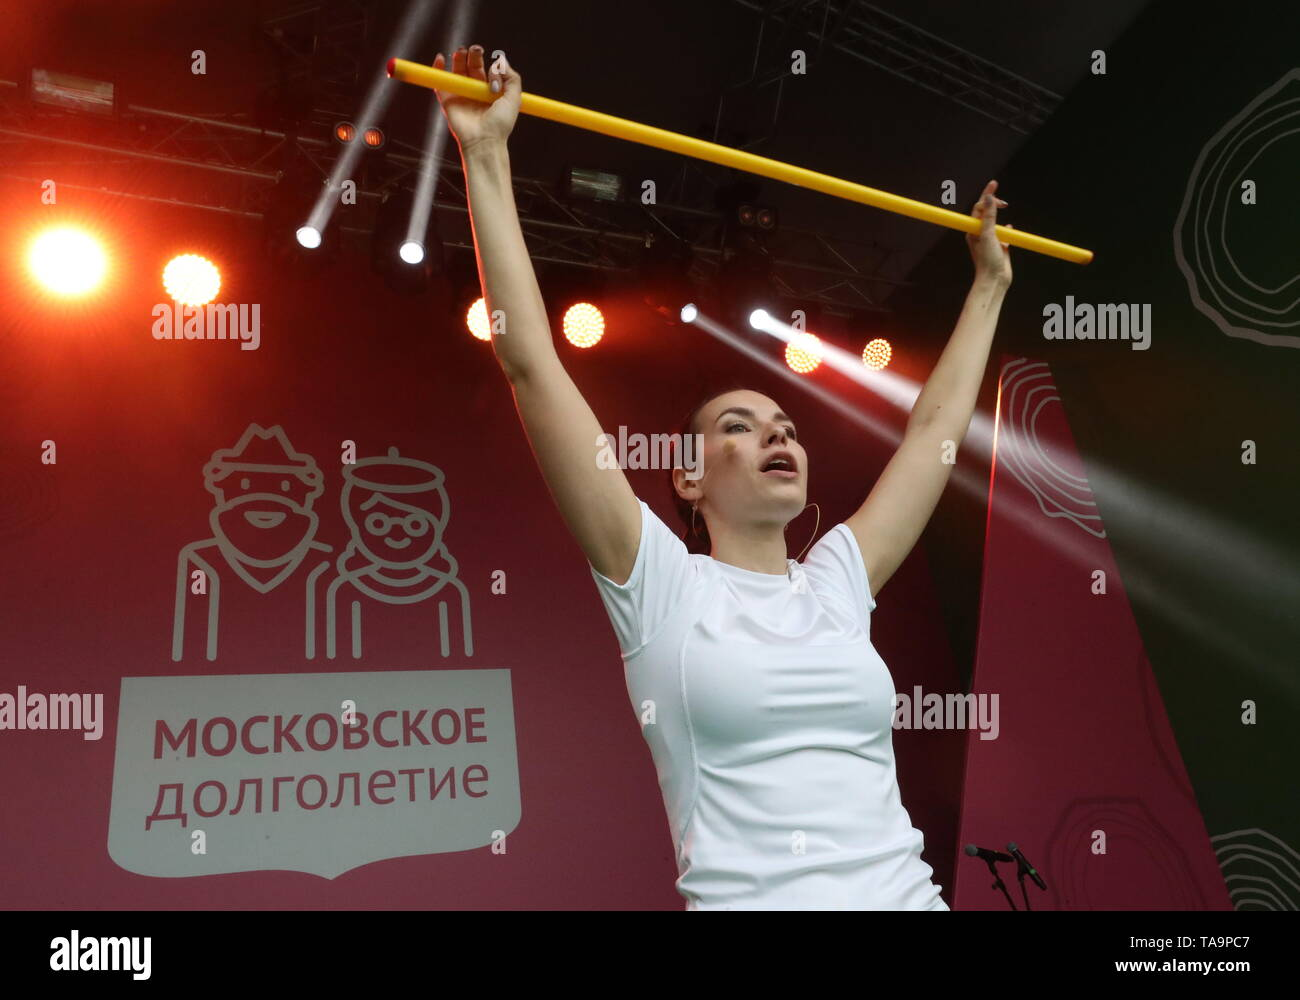 Moscow, Russia. 23rd May, 2019. MOSCOW, RUSSIA - MAY 23, 2019: A coach of the Moscow Longevity project seen as senior citizens set a world record of 'the most populous exercise with sticks' among people of older age, at the opening of a summer season at Moscow's Muzeon Park. Sergei Savostyanov/TASS Credit: ITAR-TASS News Agency/Alamy Live News - Stock Image